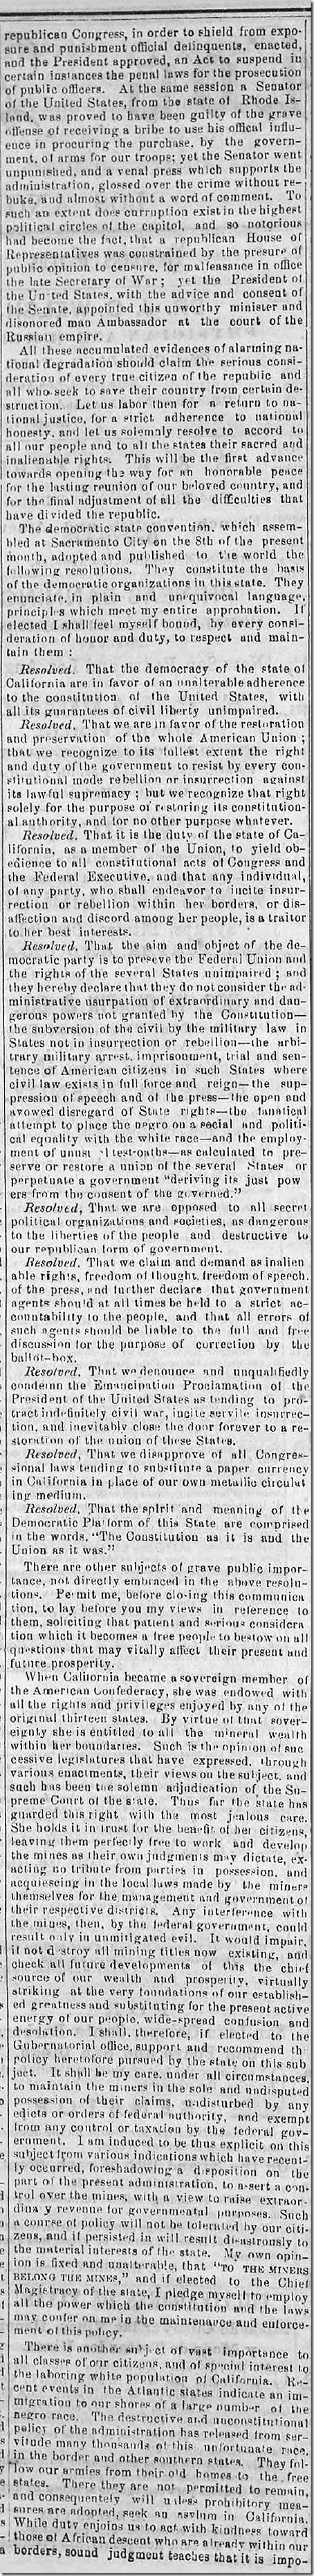 Aug. 1, 1863, Downey Campaign Speech